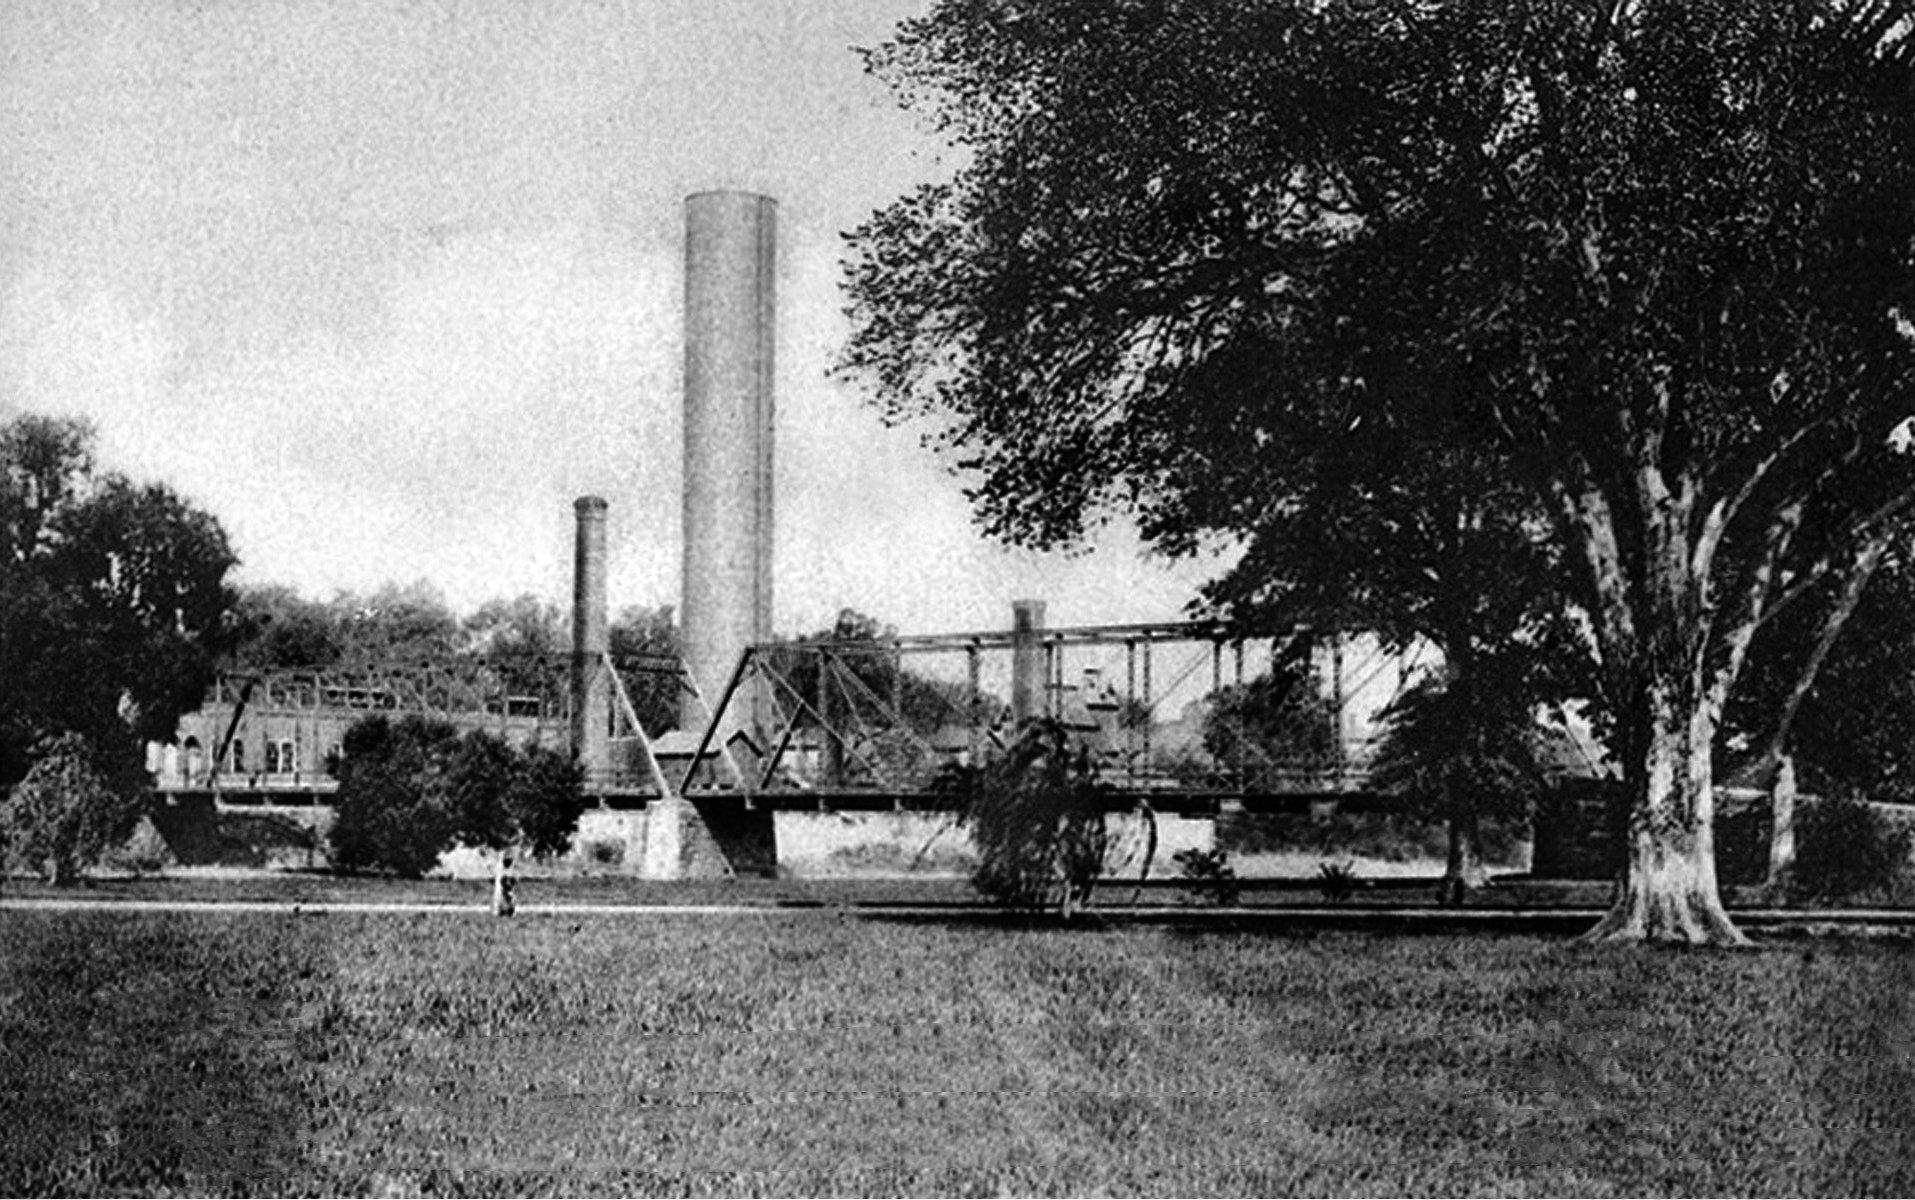 This power station is where the hydro-electric power for Duke Farms was generated. The pumping house had a capacity of one million gallons per day. A pipe laid under the river connected the pumping house to the two million-gallon Duke Reservoir.